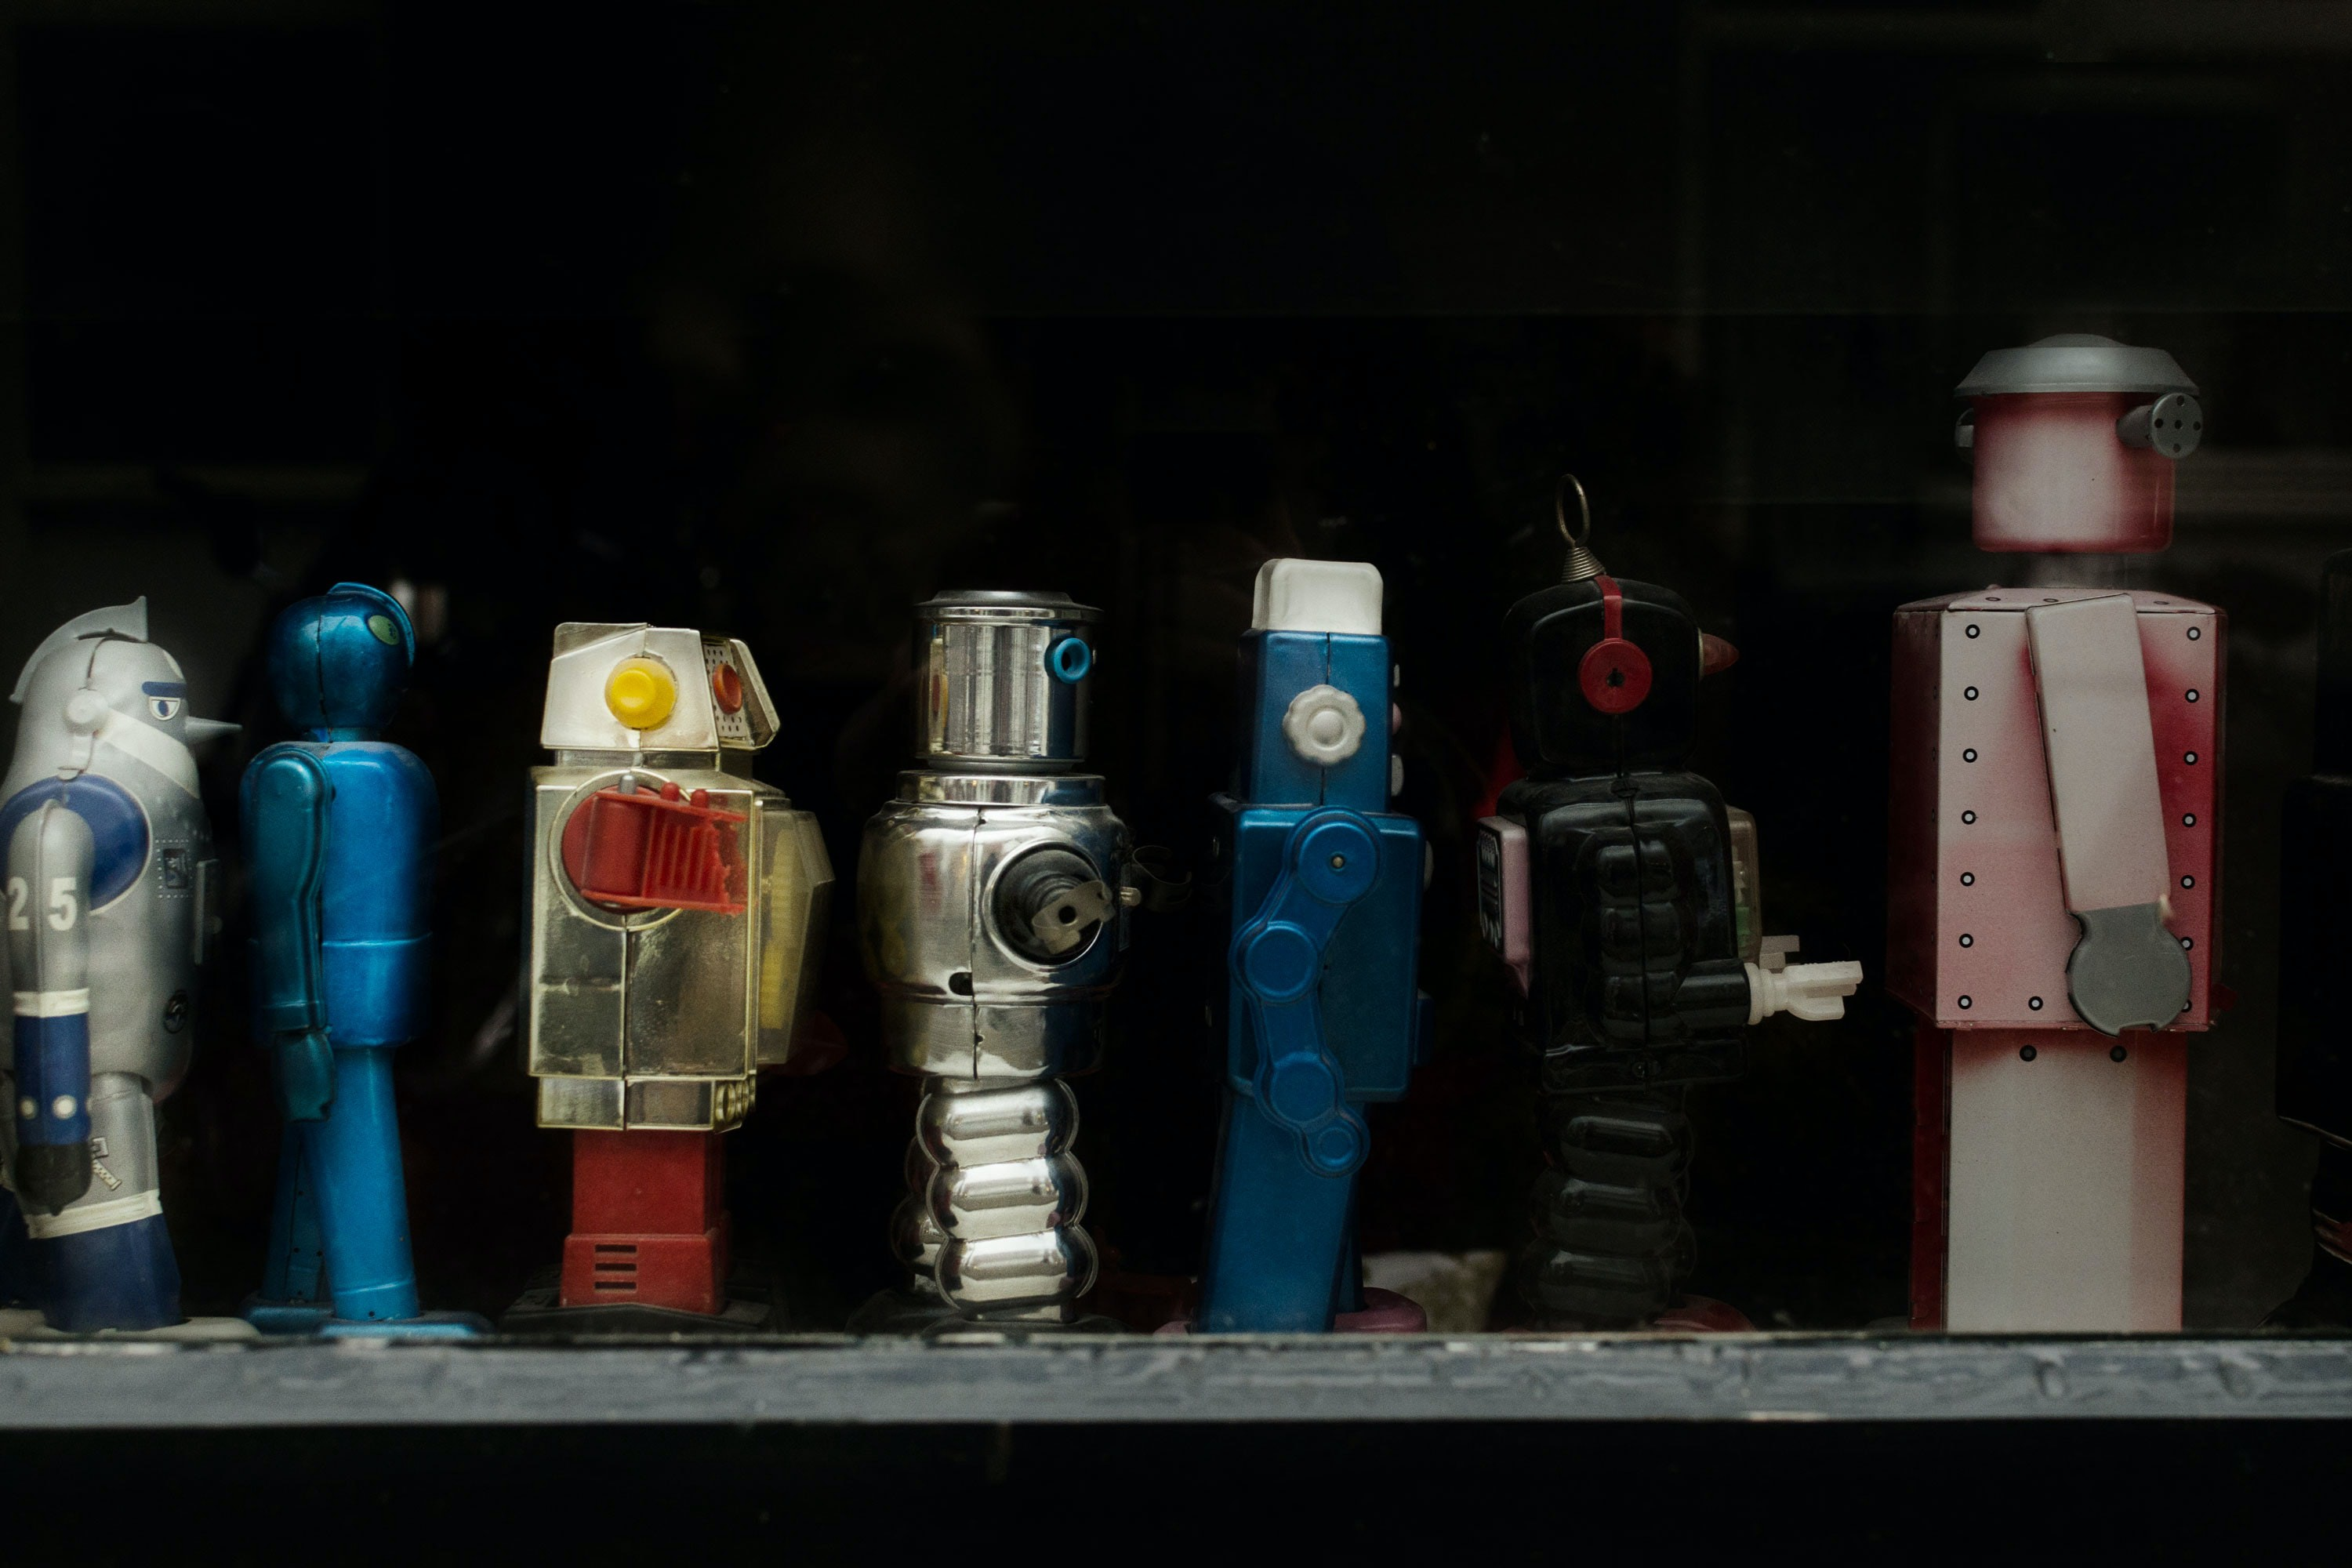 A variety of toy robots stand on a shelf.